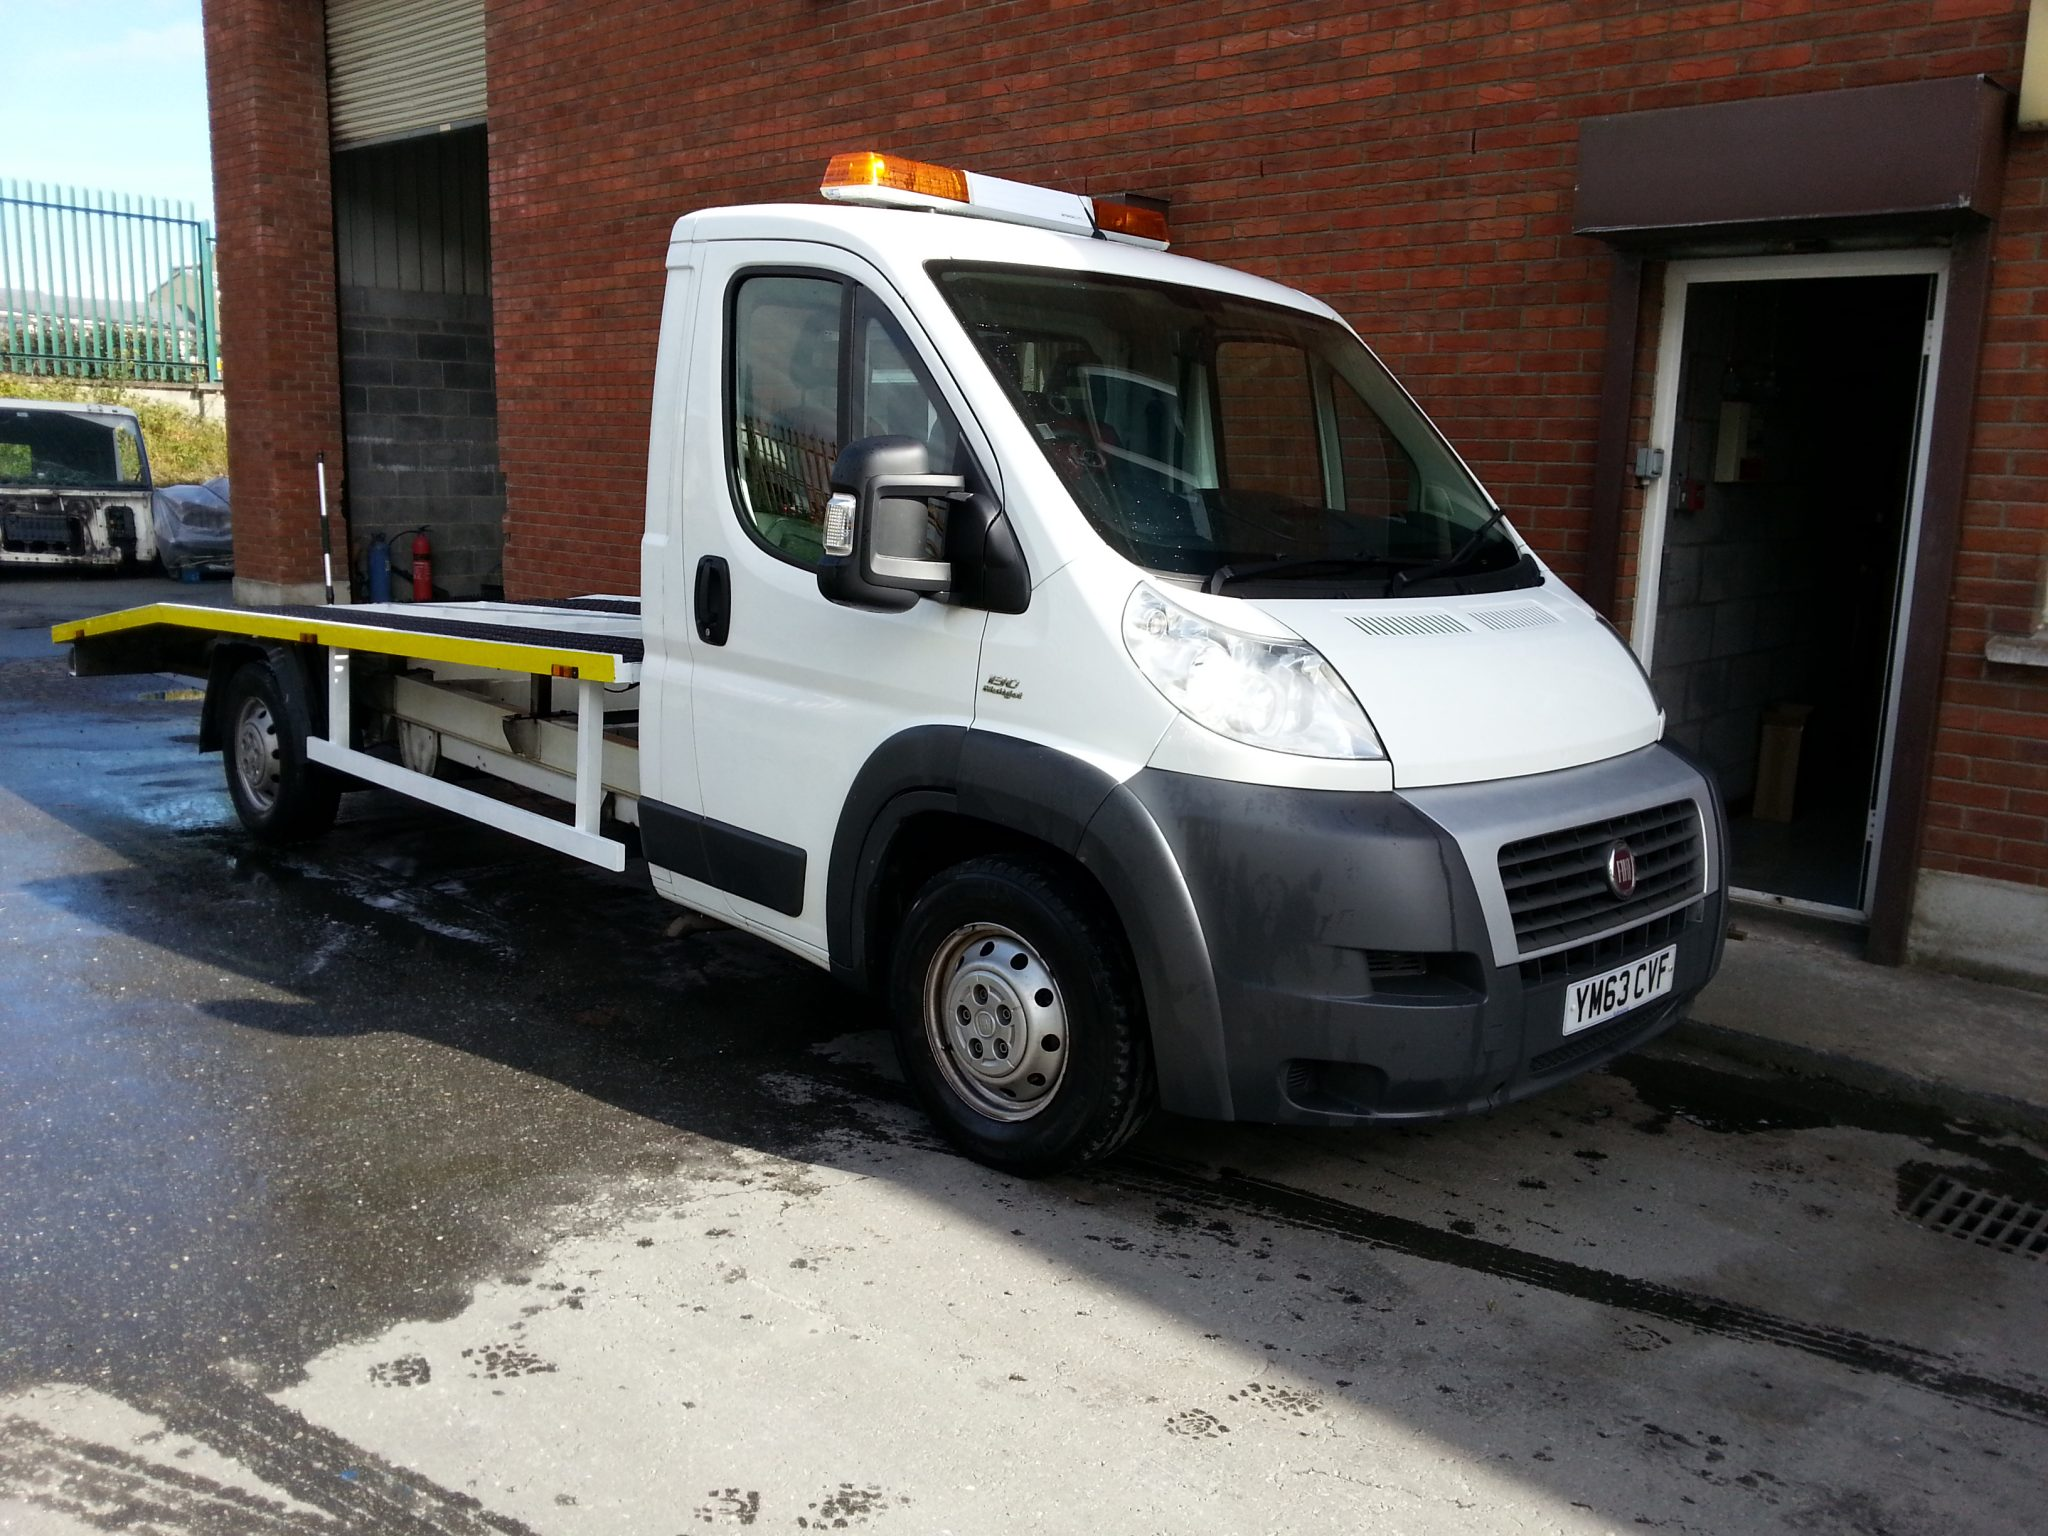 Used Recovery Truck - Recovery Vehicle - Slideback